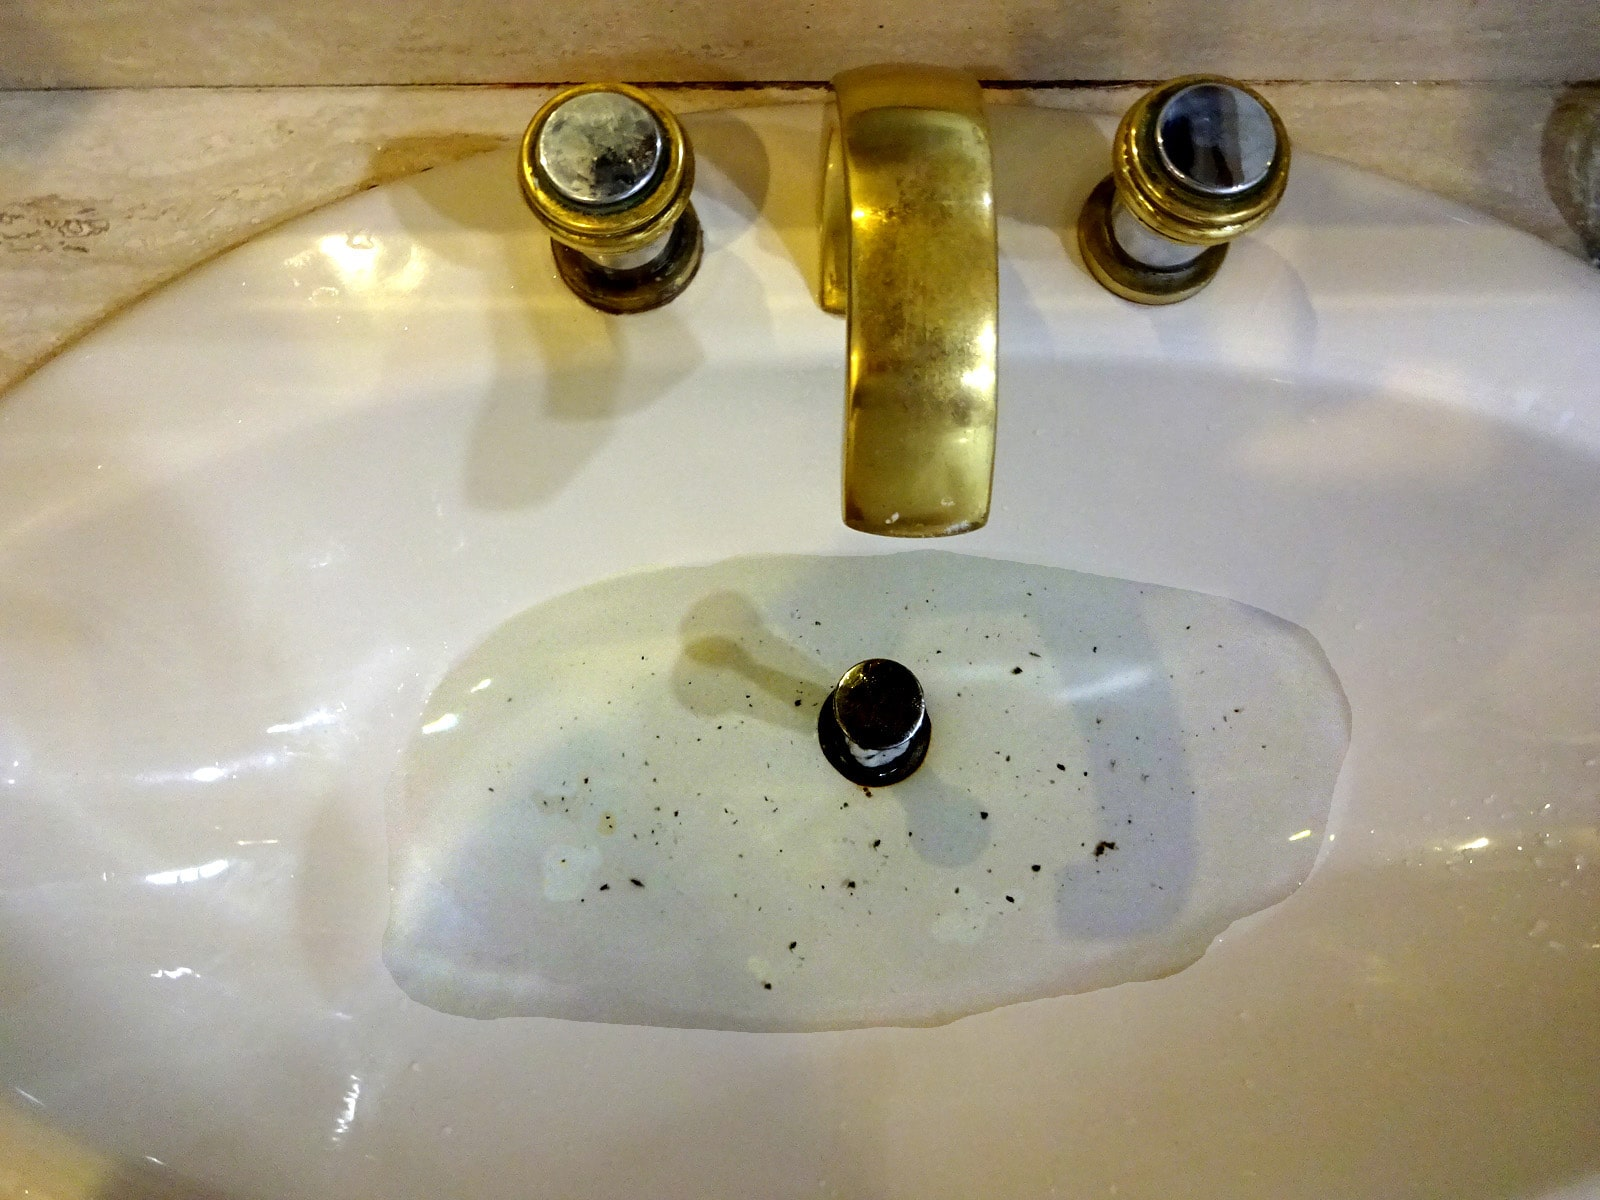 clogged sink has many causes many are avoidable